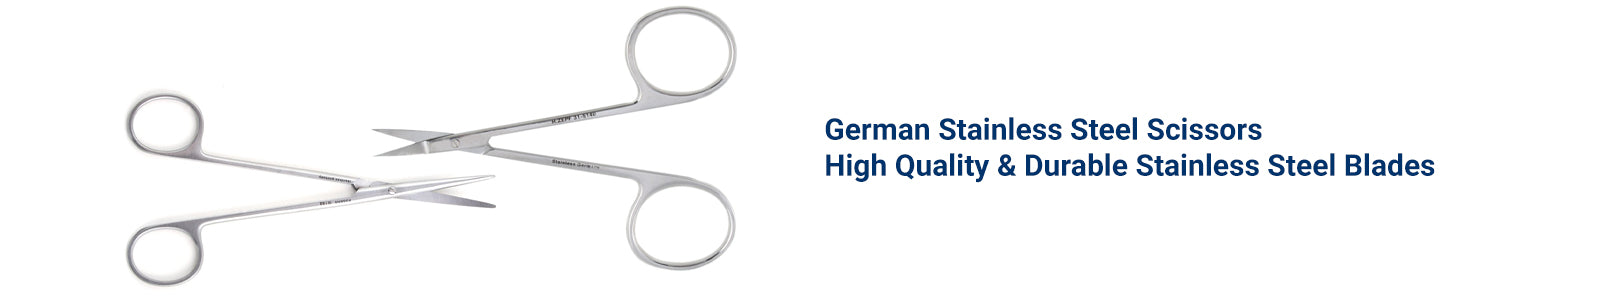 German-Stainless-Steel